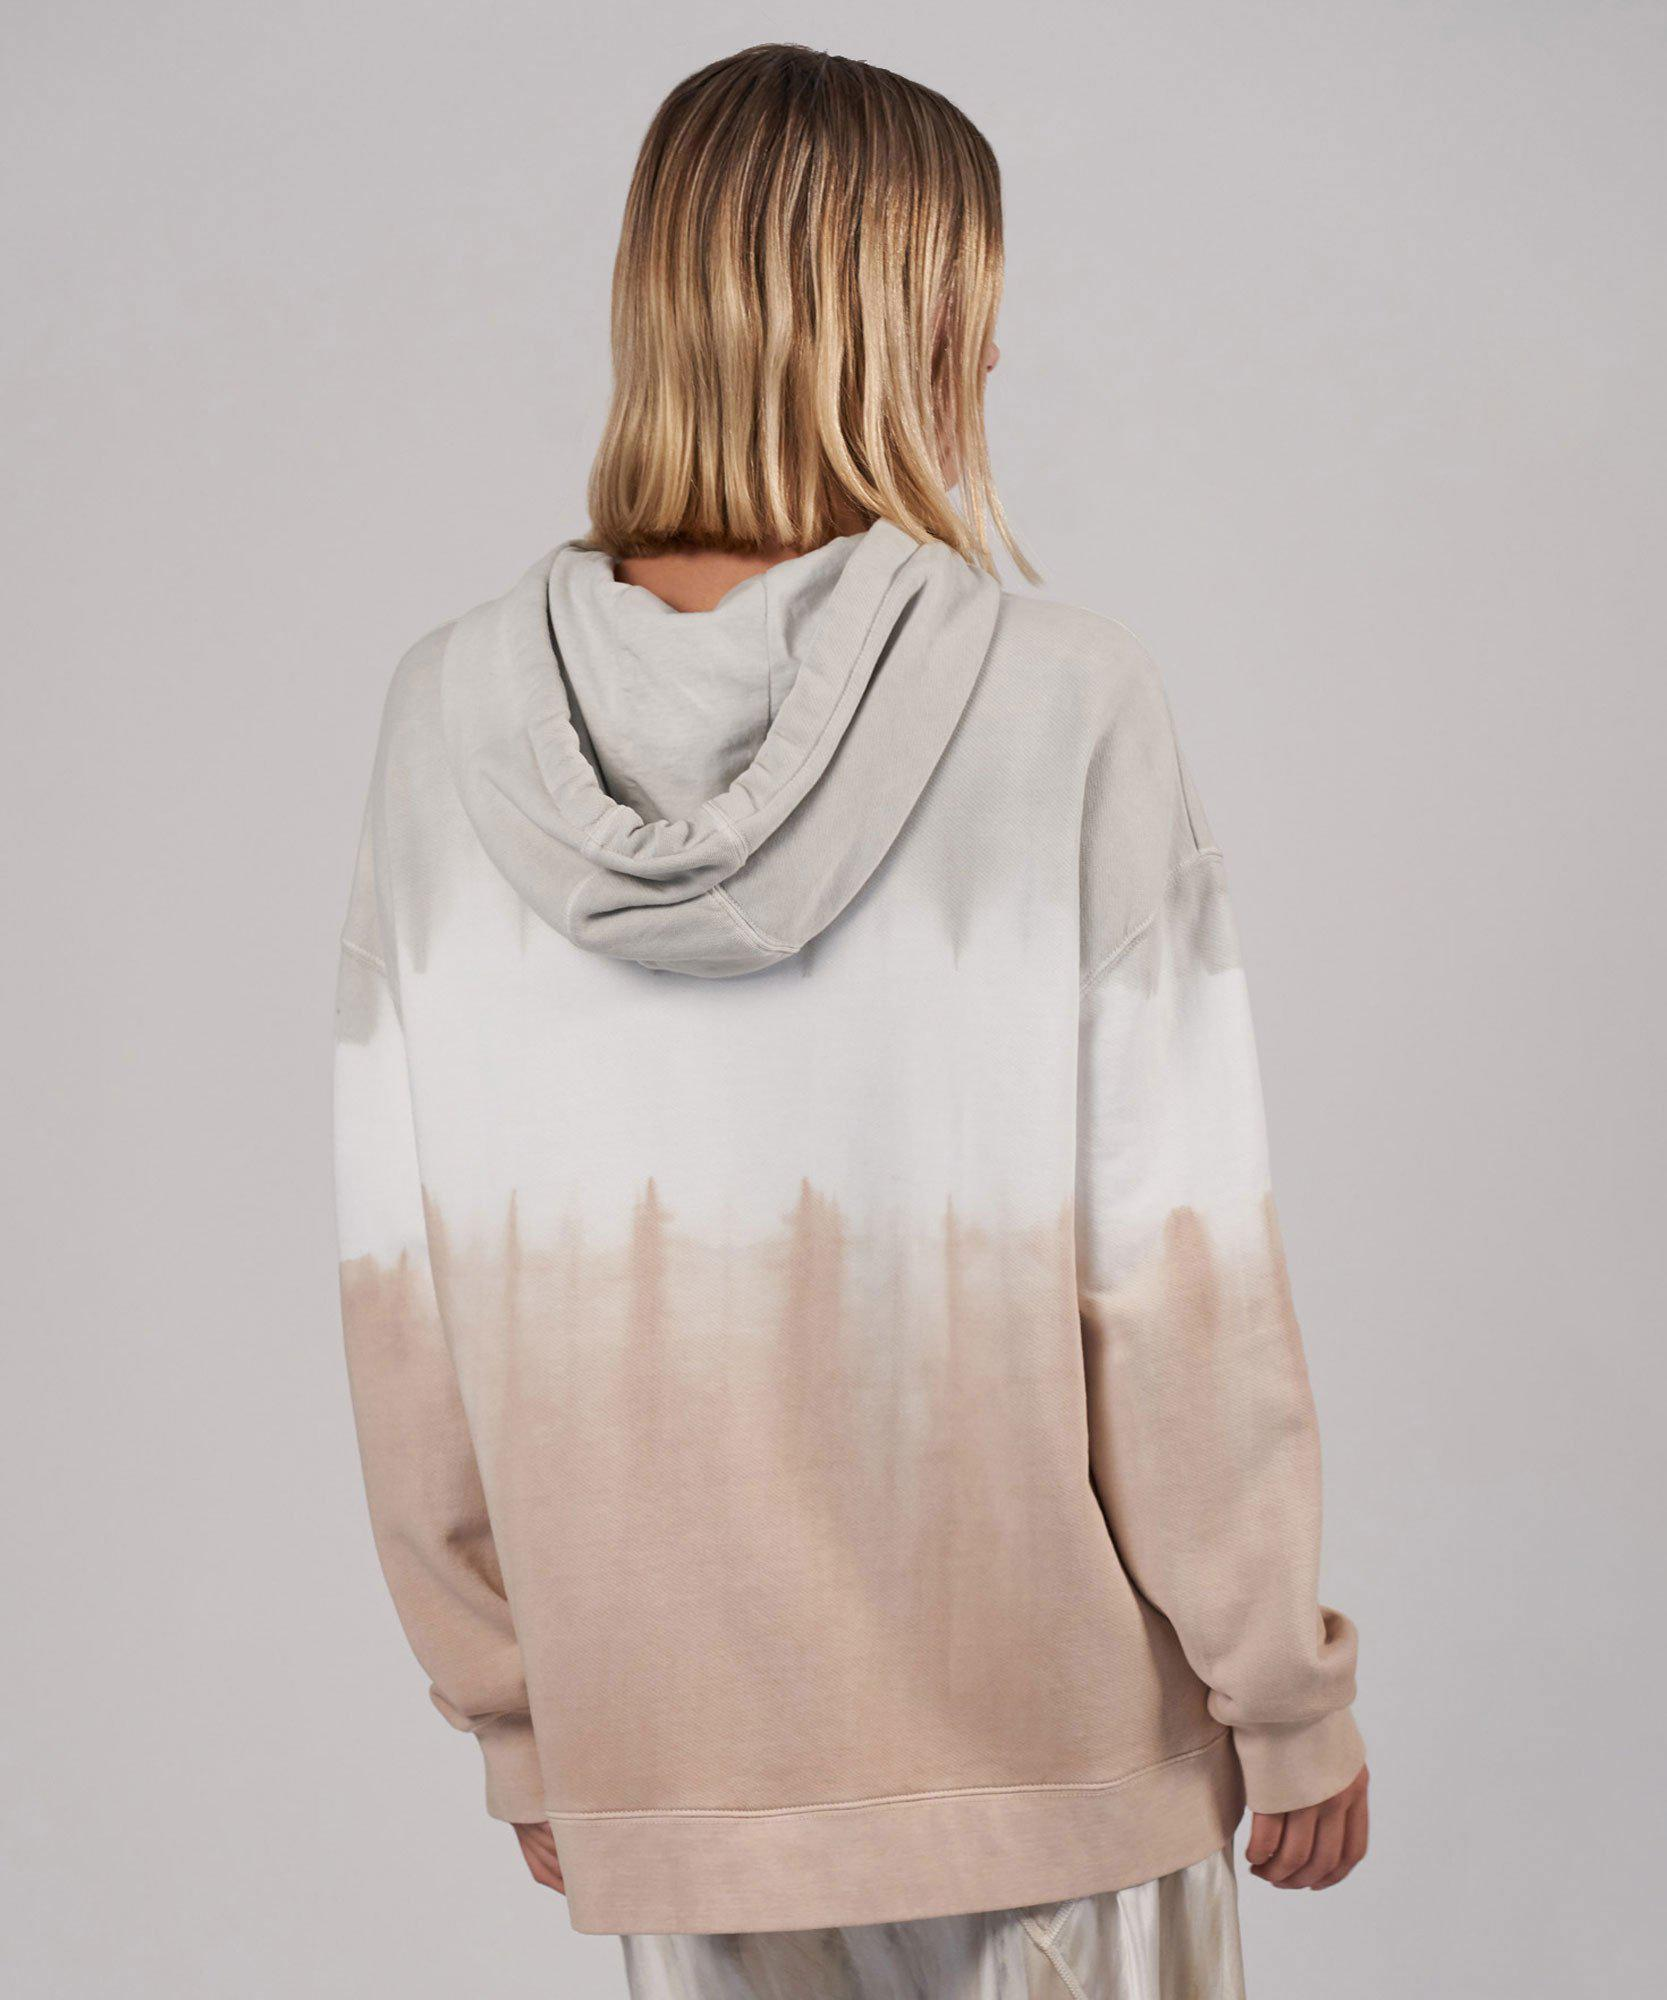 Tie Dye French Terry Oversized Hoodie - Vapor/ Talc/ Canvas Combo 2